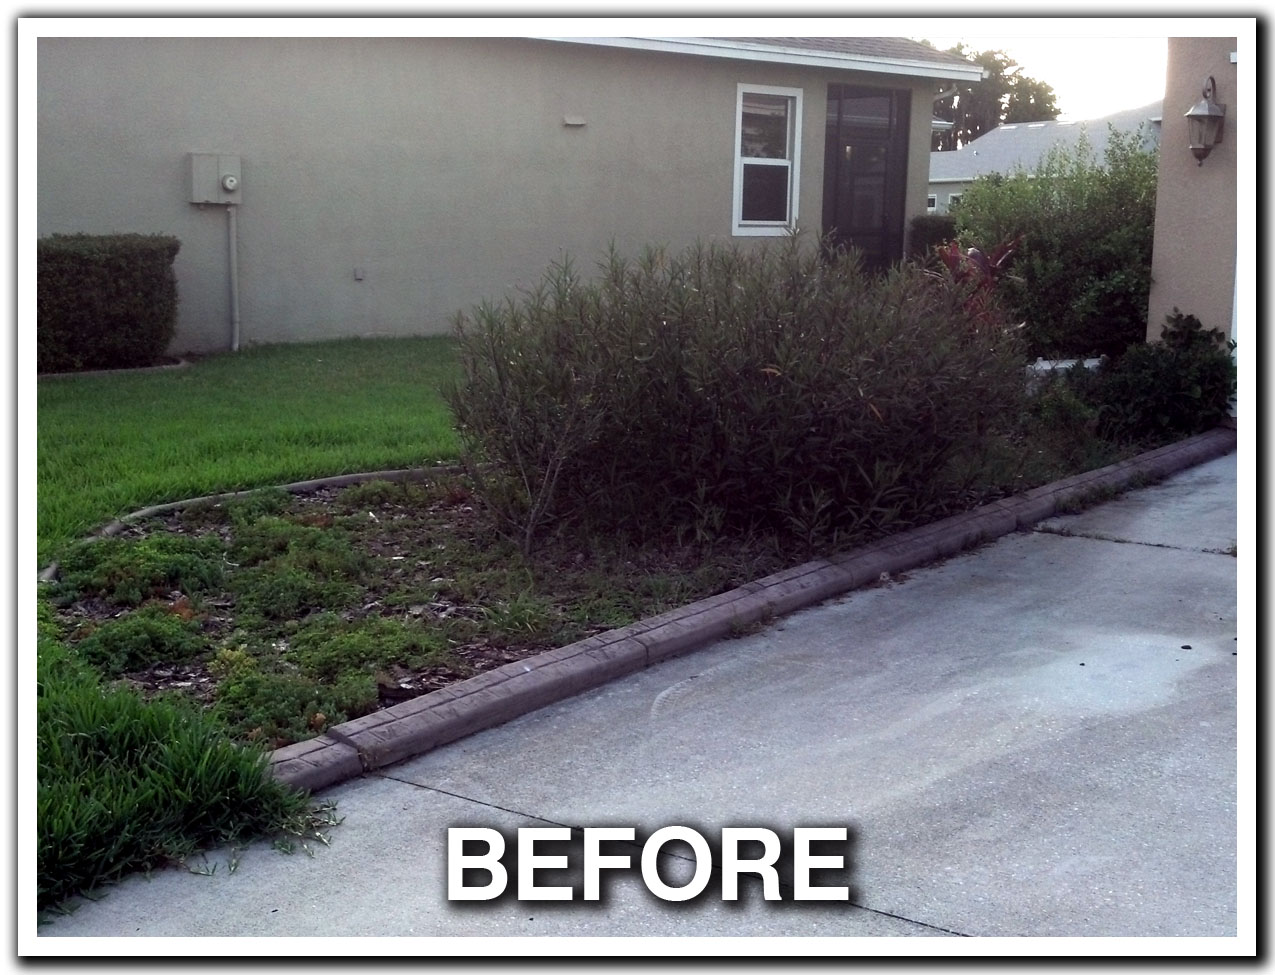 LANDSCAPING, LAWN CARE, MAINTENANCE, BUSH HOG, BUSH HOGGING, TRACTOR WORK, SERVICE, MOWING, MOW, LANDSCAPE LIGHTING, SOD, SOD INSTALLATION, SODDING SERVICES, LUTZ, ODESSA, LAND O LAKES, WESLEY CHAPEL, NEW TAMPA, COMMERCIAL, RESIDENTIAL, FLORIDA, FL